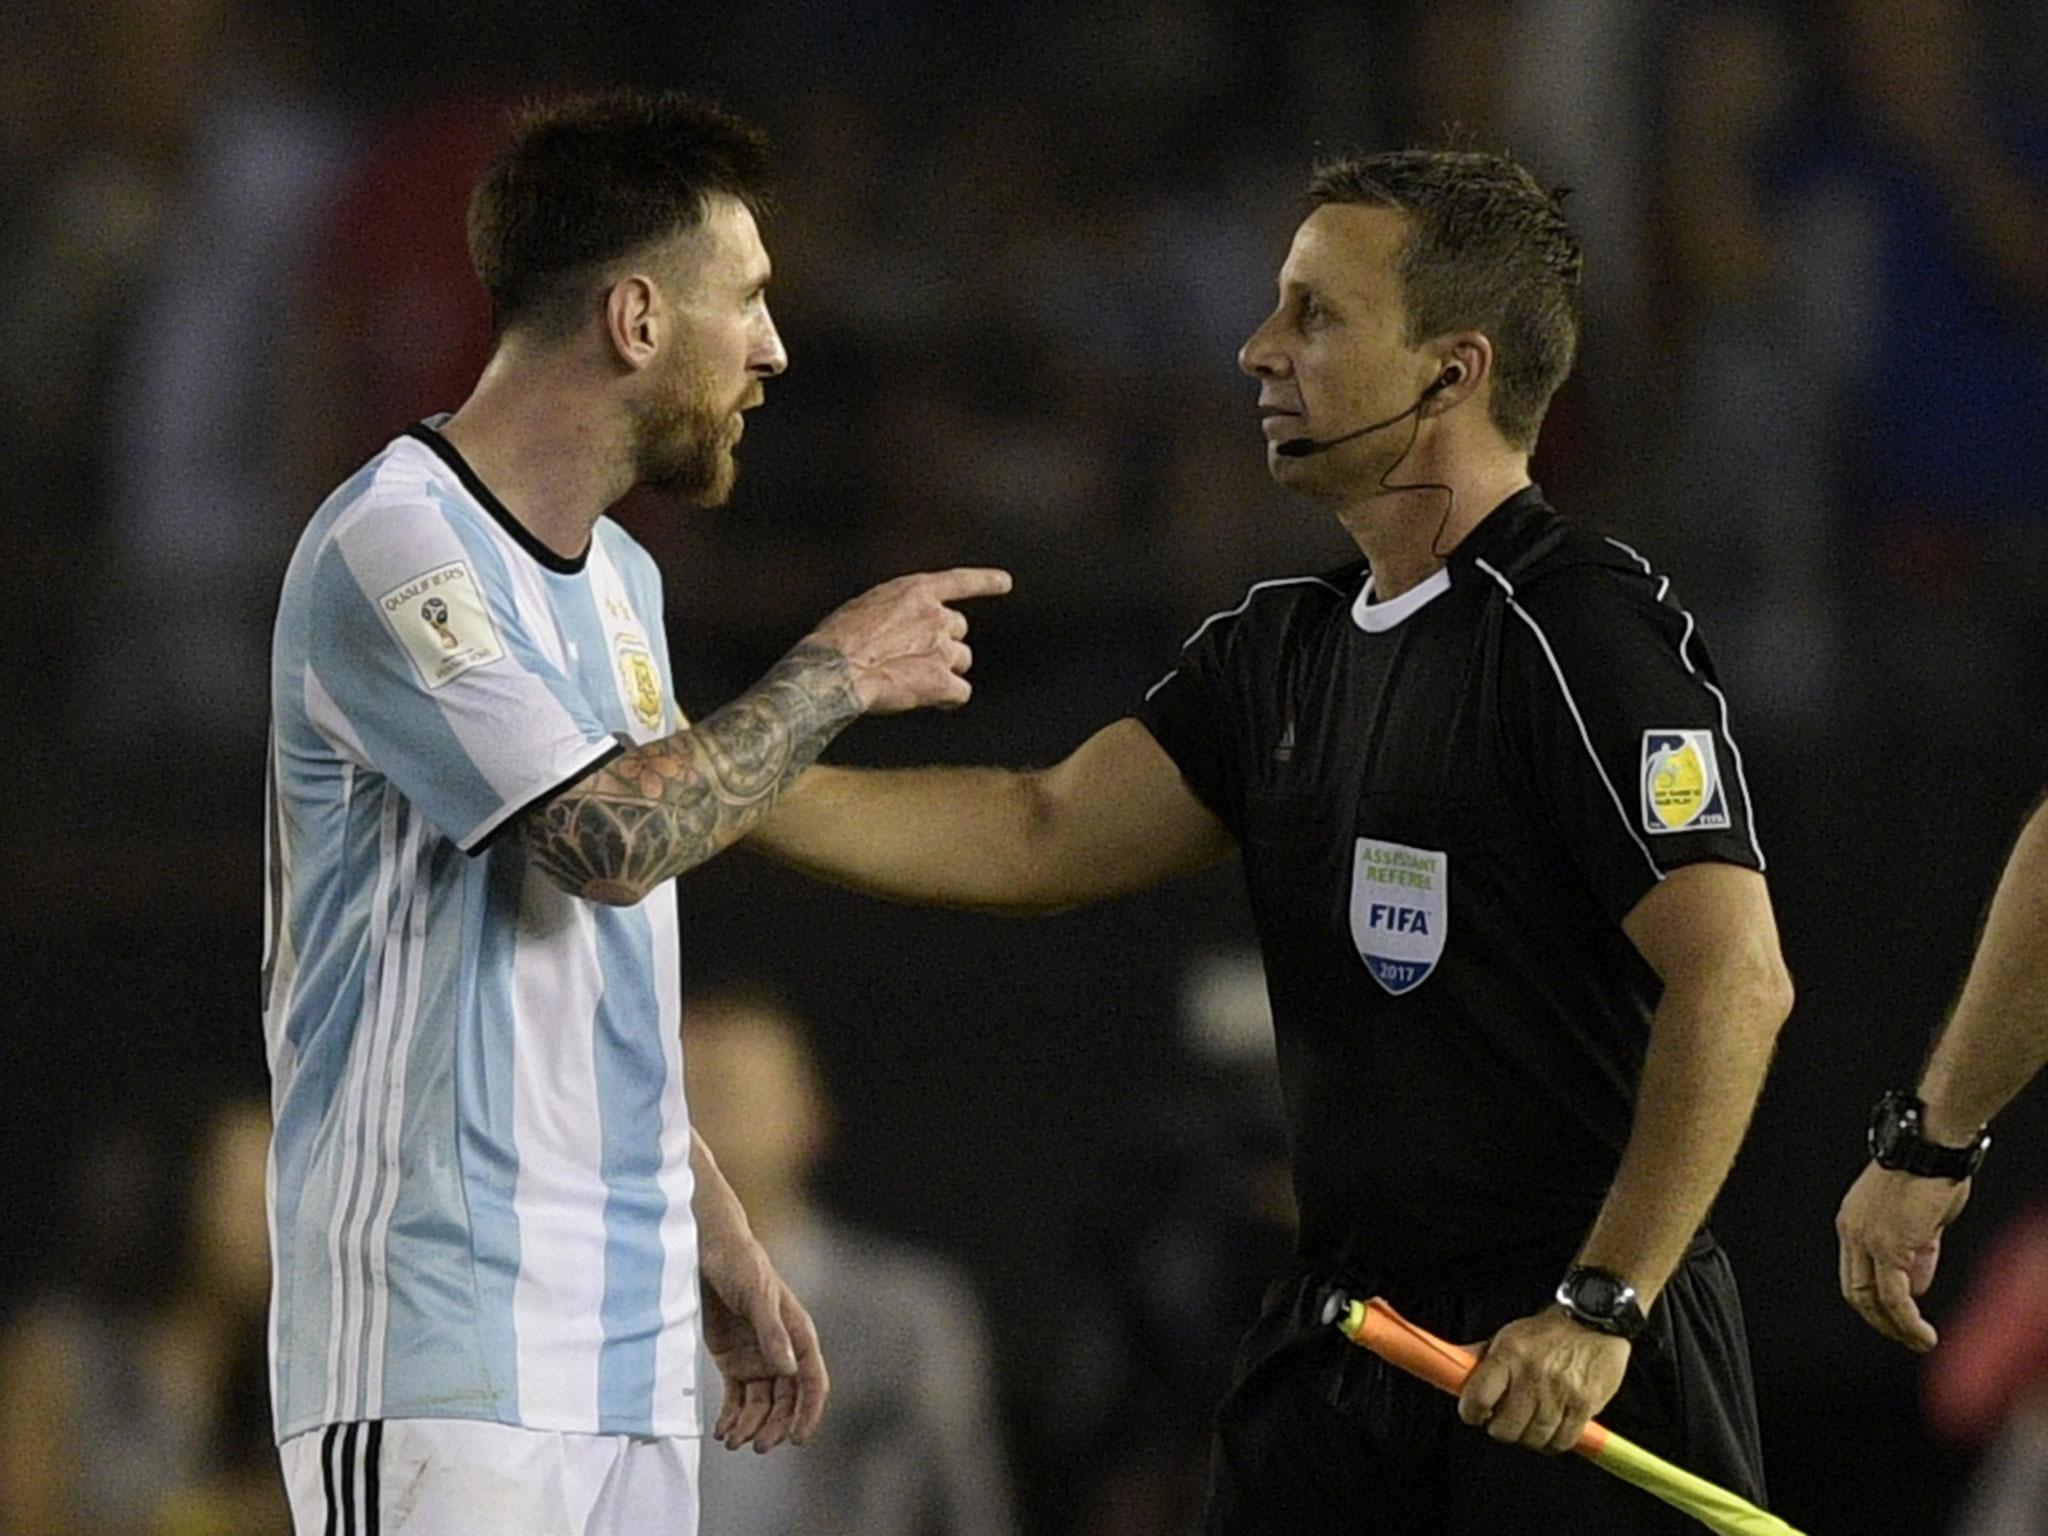 Lionel Messi claims he didn't tell official to 'f*** off, the c*** of your mother' as Diego Maradona calls him a 'teddy bear'